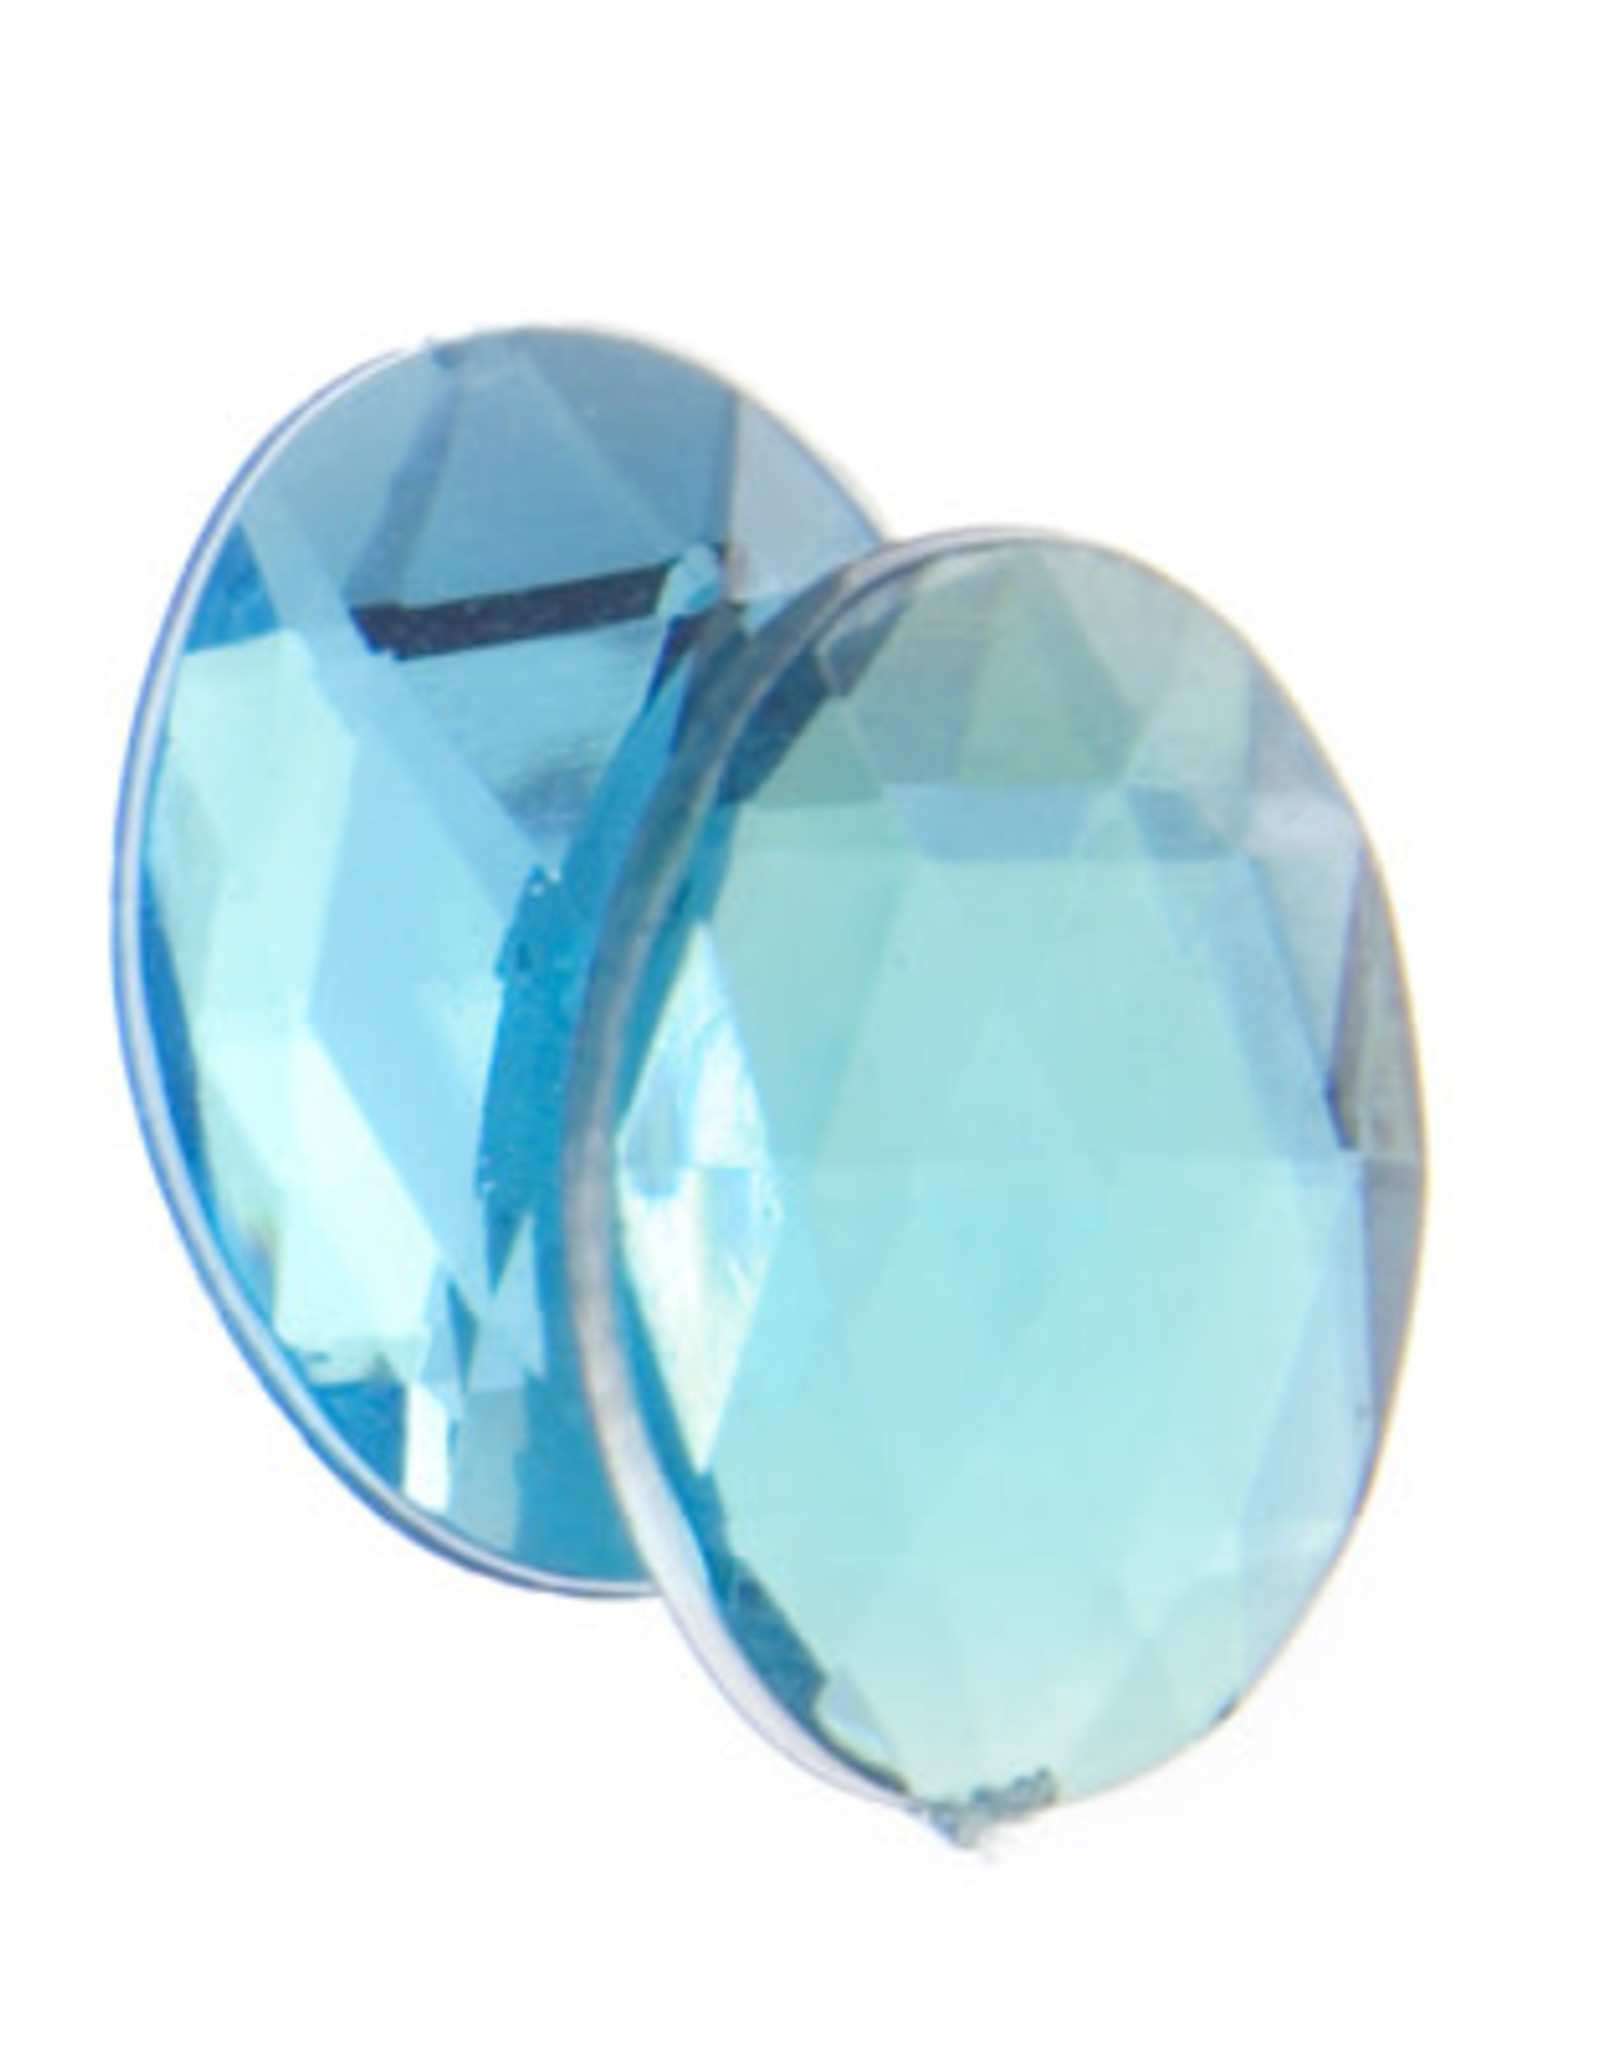 Acrylic Facetted Rhinestone Oval (100 pcs)14x10mm